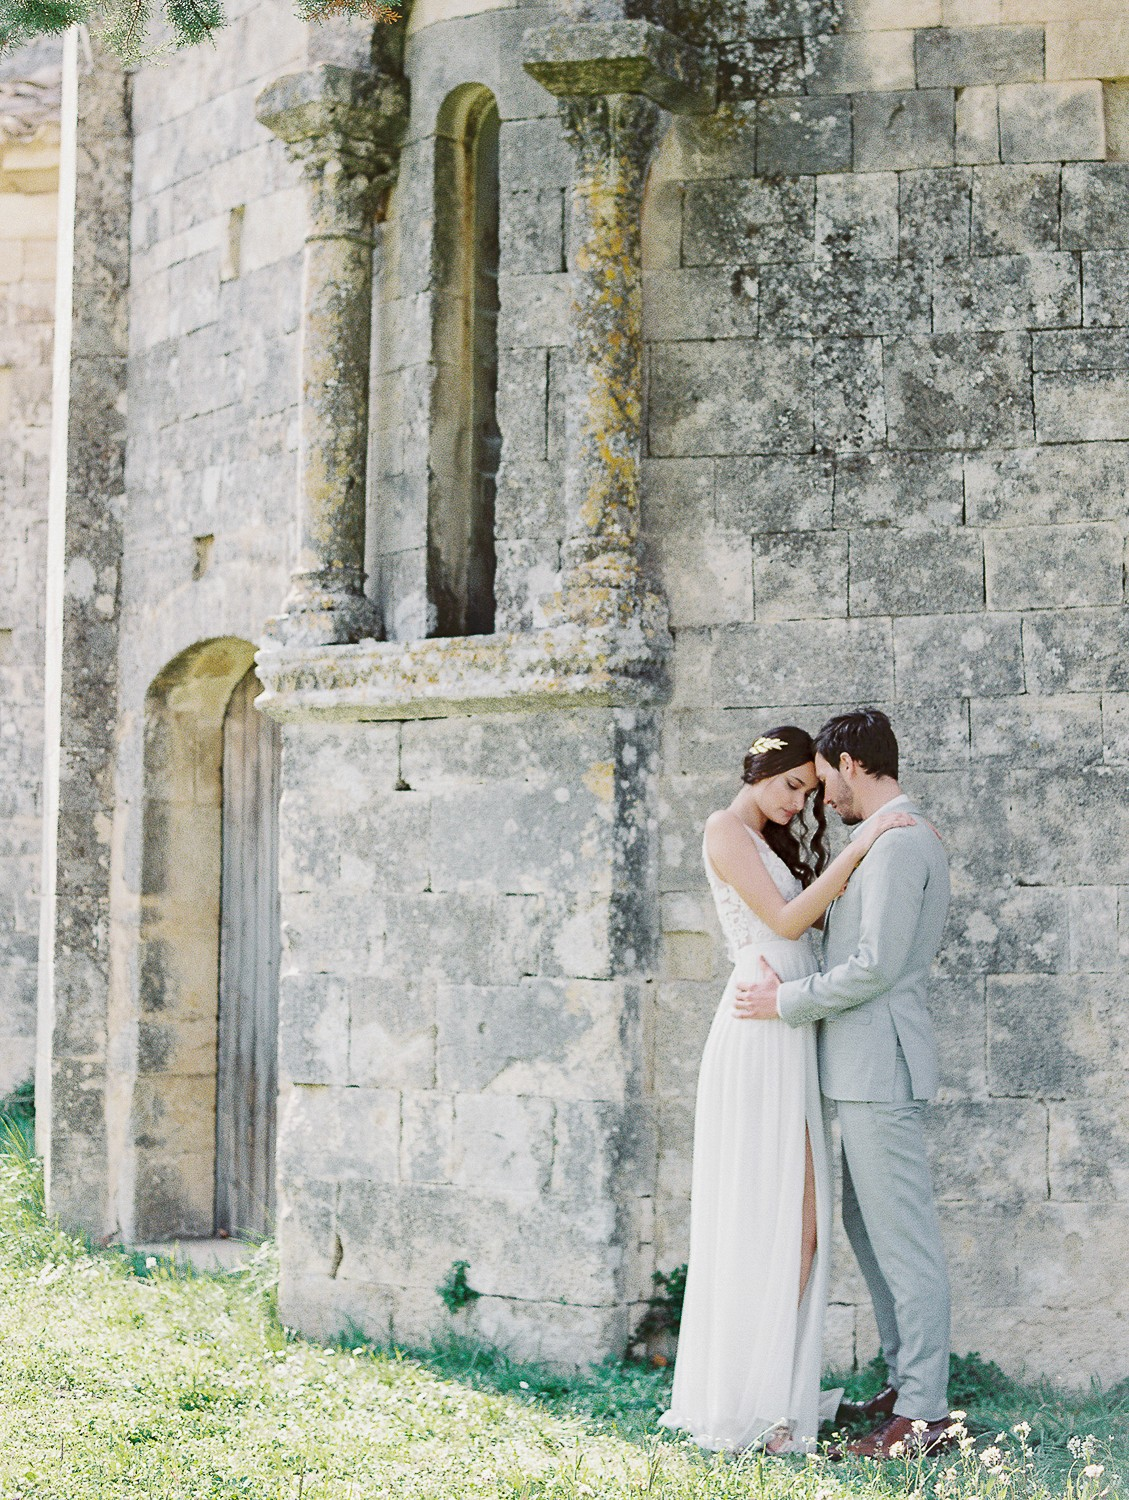 Blush and Marigold Wedding in a Provencal Abbey